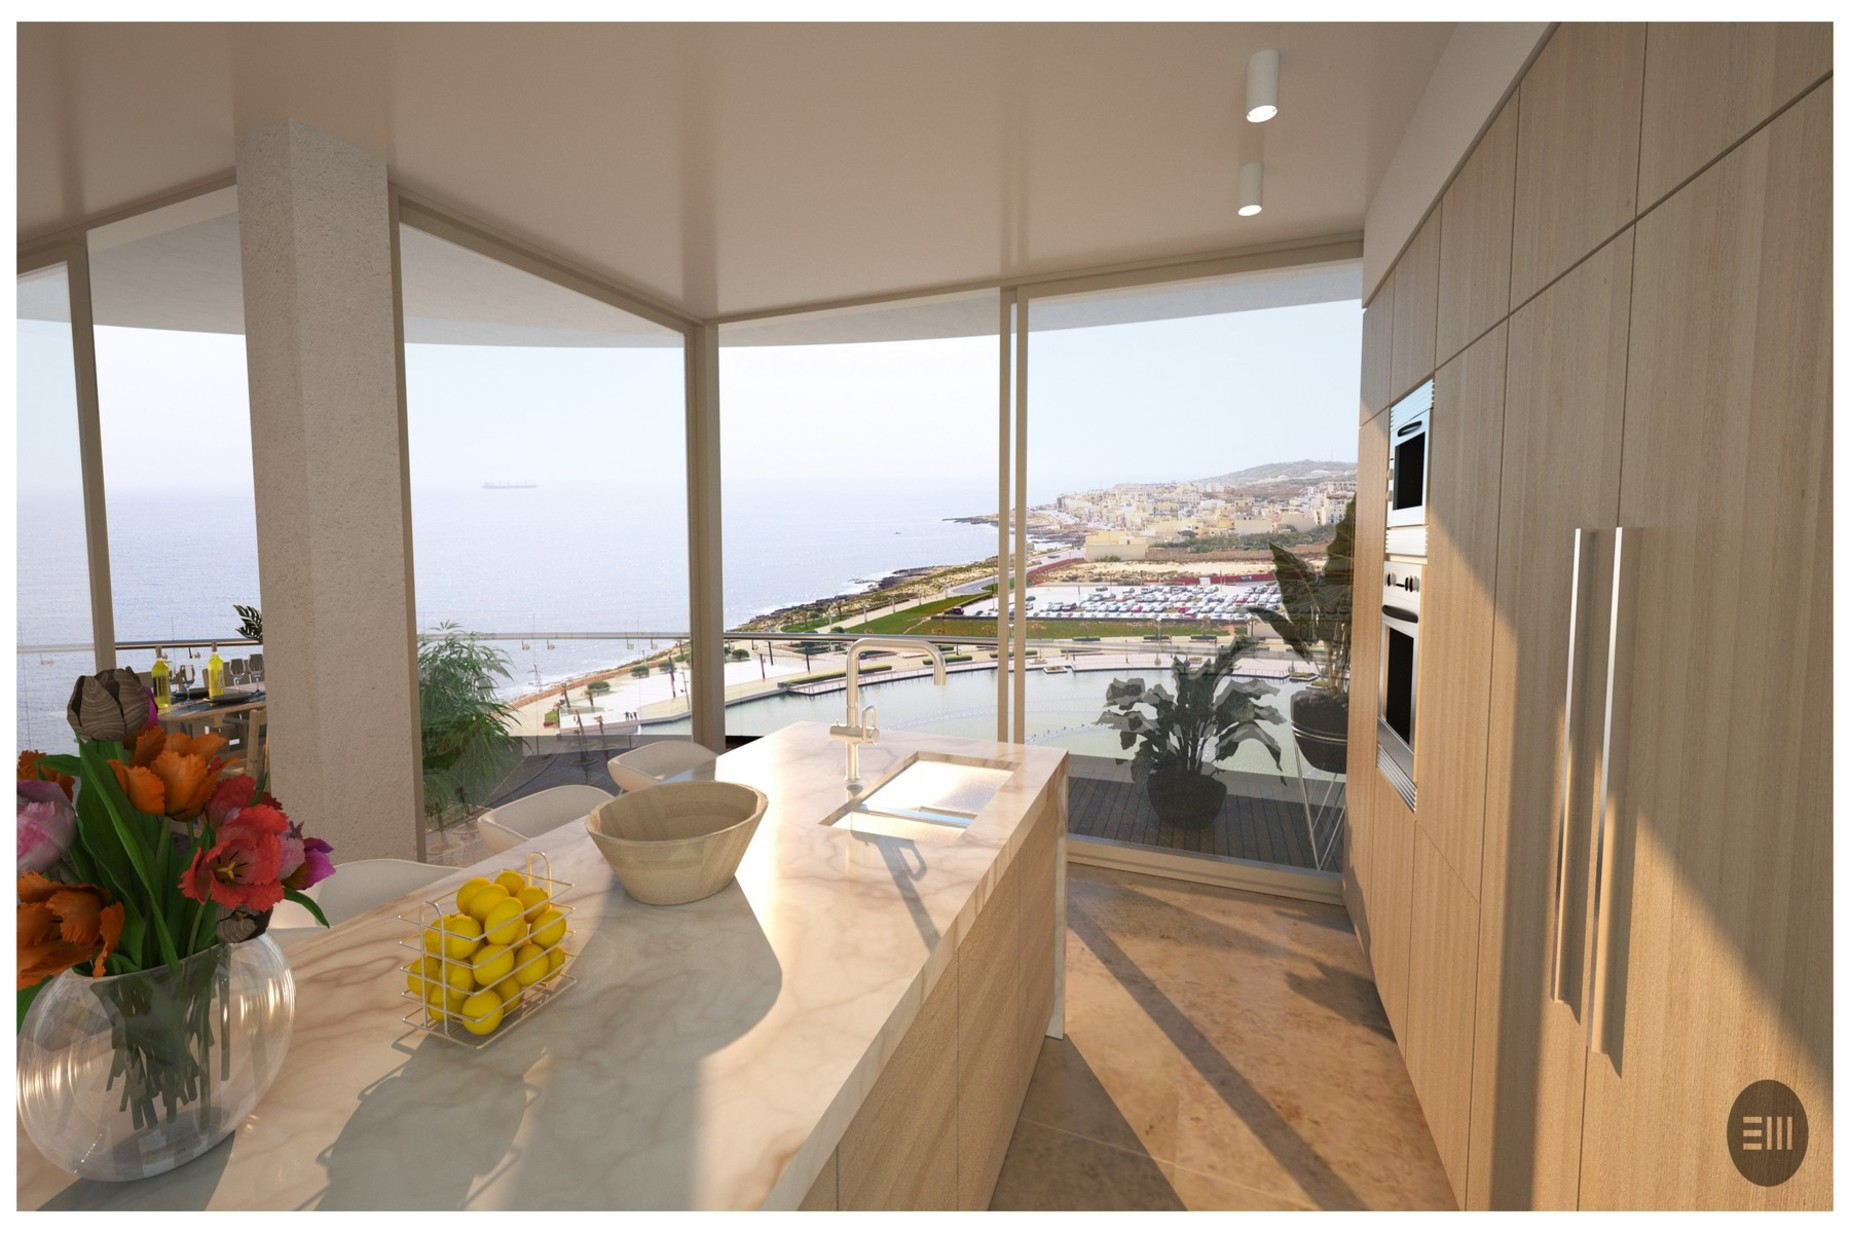 0 bed Block of Apartments (Res) For Sale in Kalkara, Kalkara - thumb 7